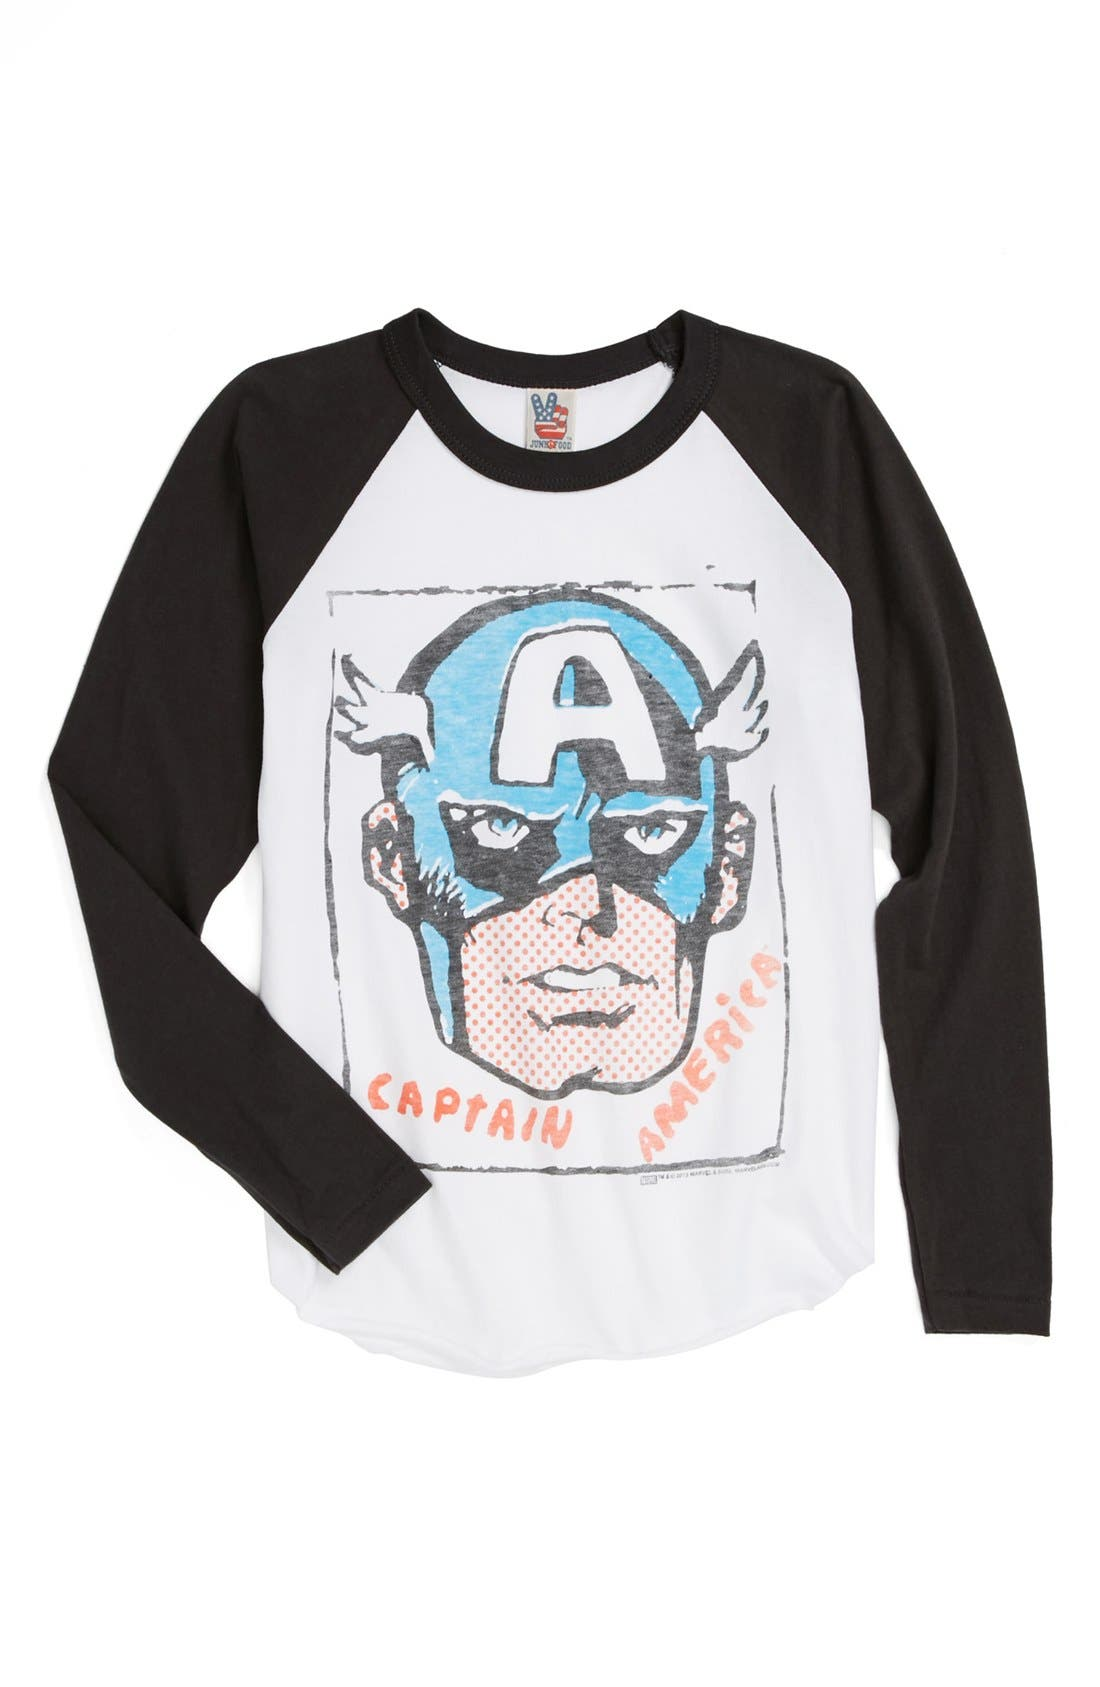 Alternate Image 1 Selected - Junk Food 'Captain America™' Baseball T-Shirt (Toddler Boys, Little Boys & Big Boys)